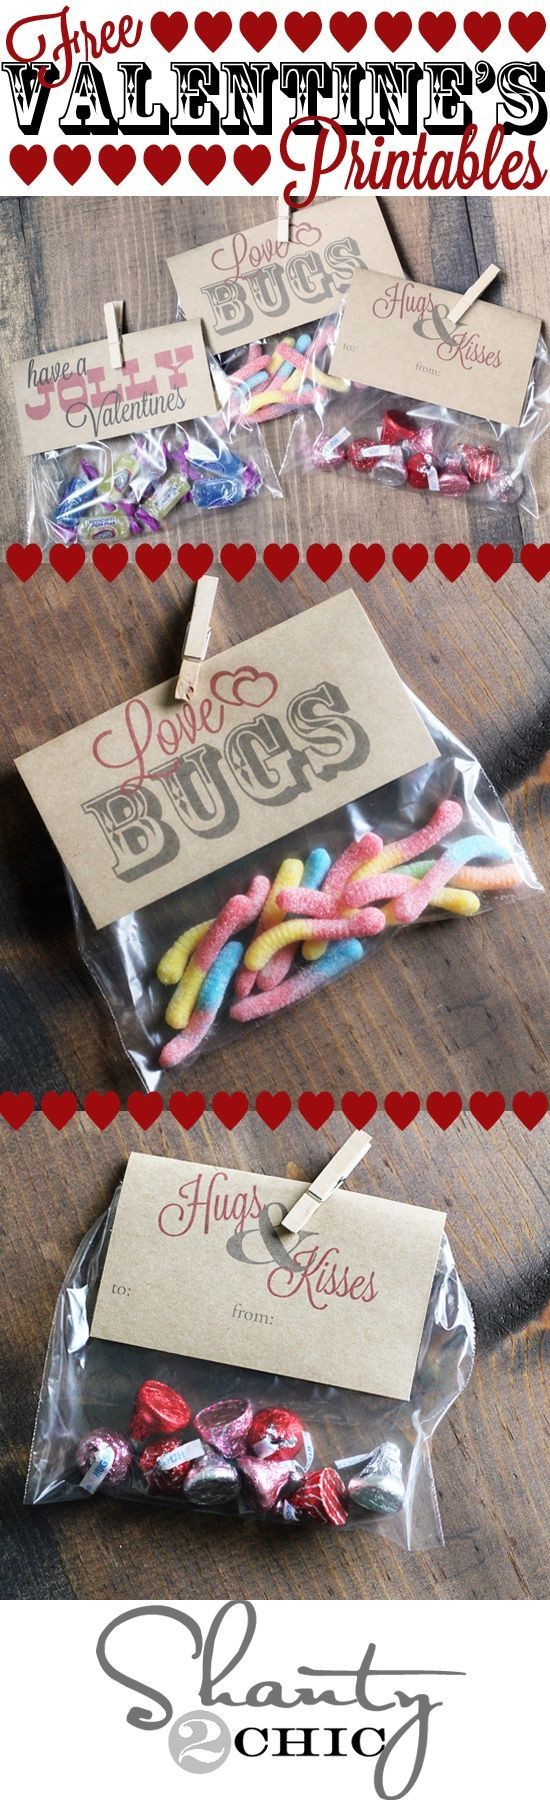 10 DIY VALENTINE GIFT AND HOME DECOR IDEAS 9 | Diy Crafts Projects & Home Design